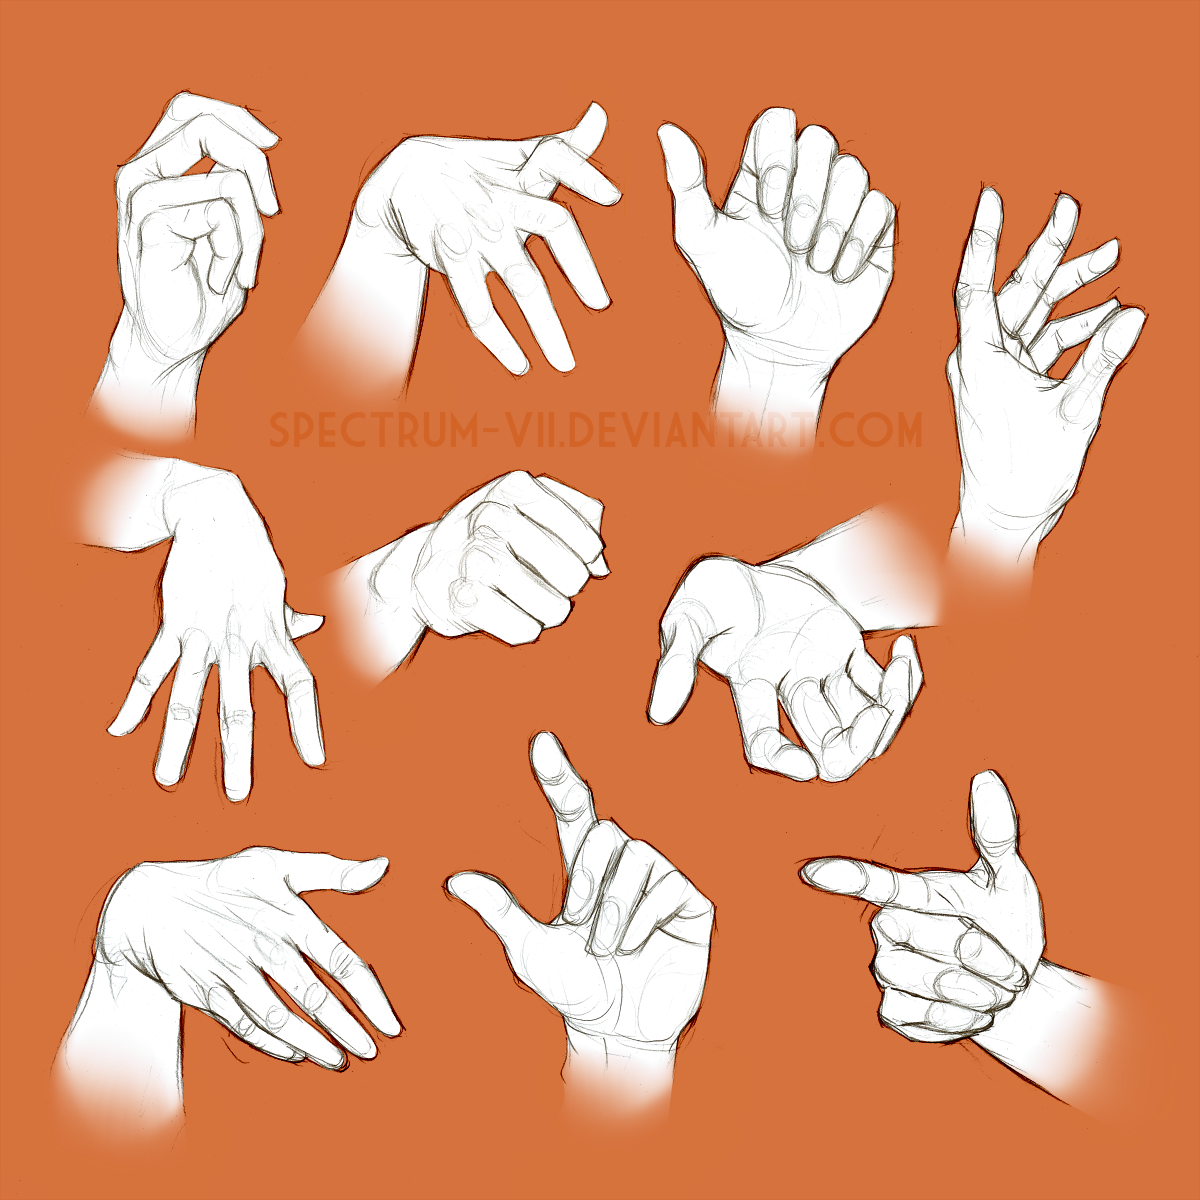 1200x1200 Life Study Hands By Spectrum Vii Hands And Arms